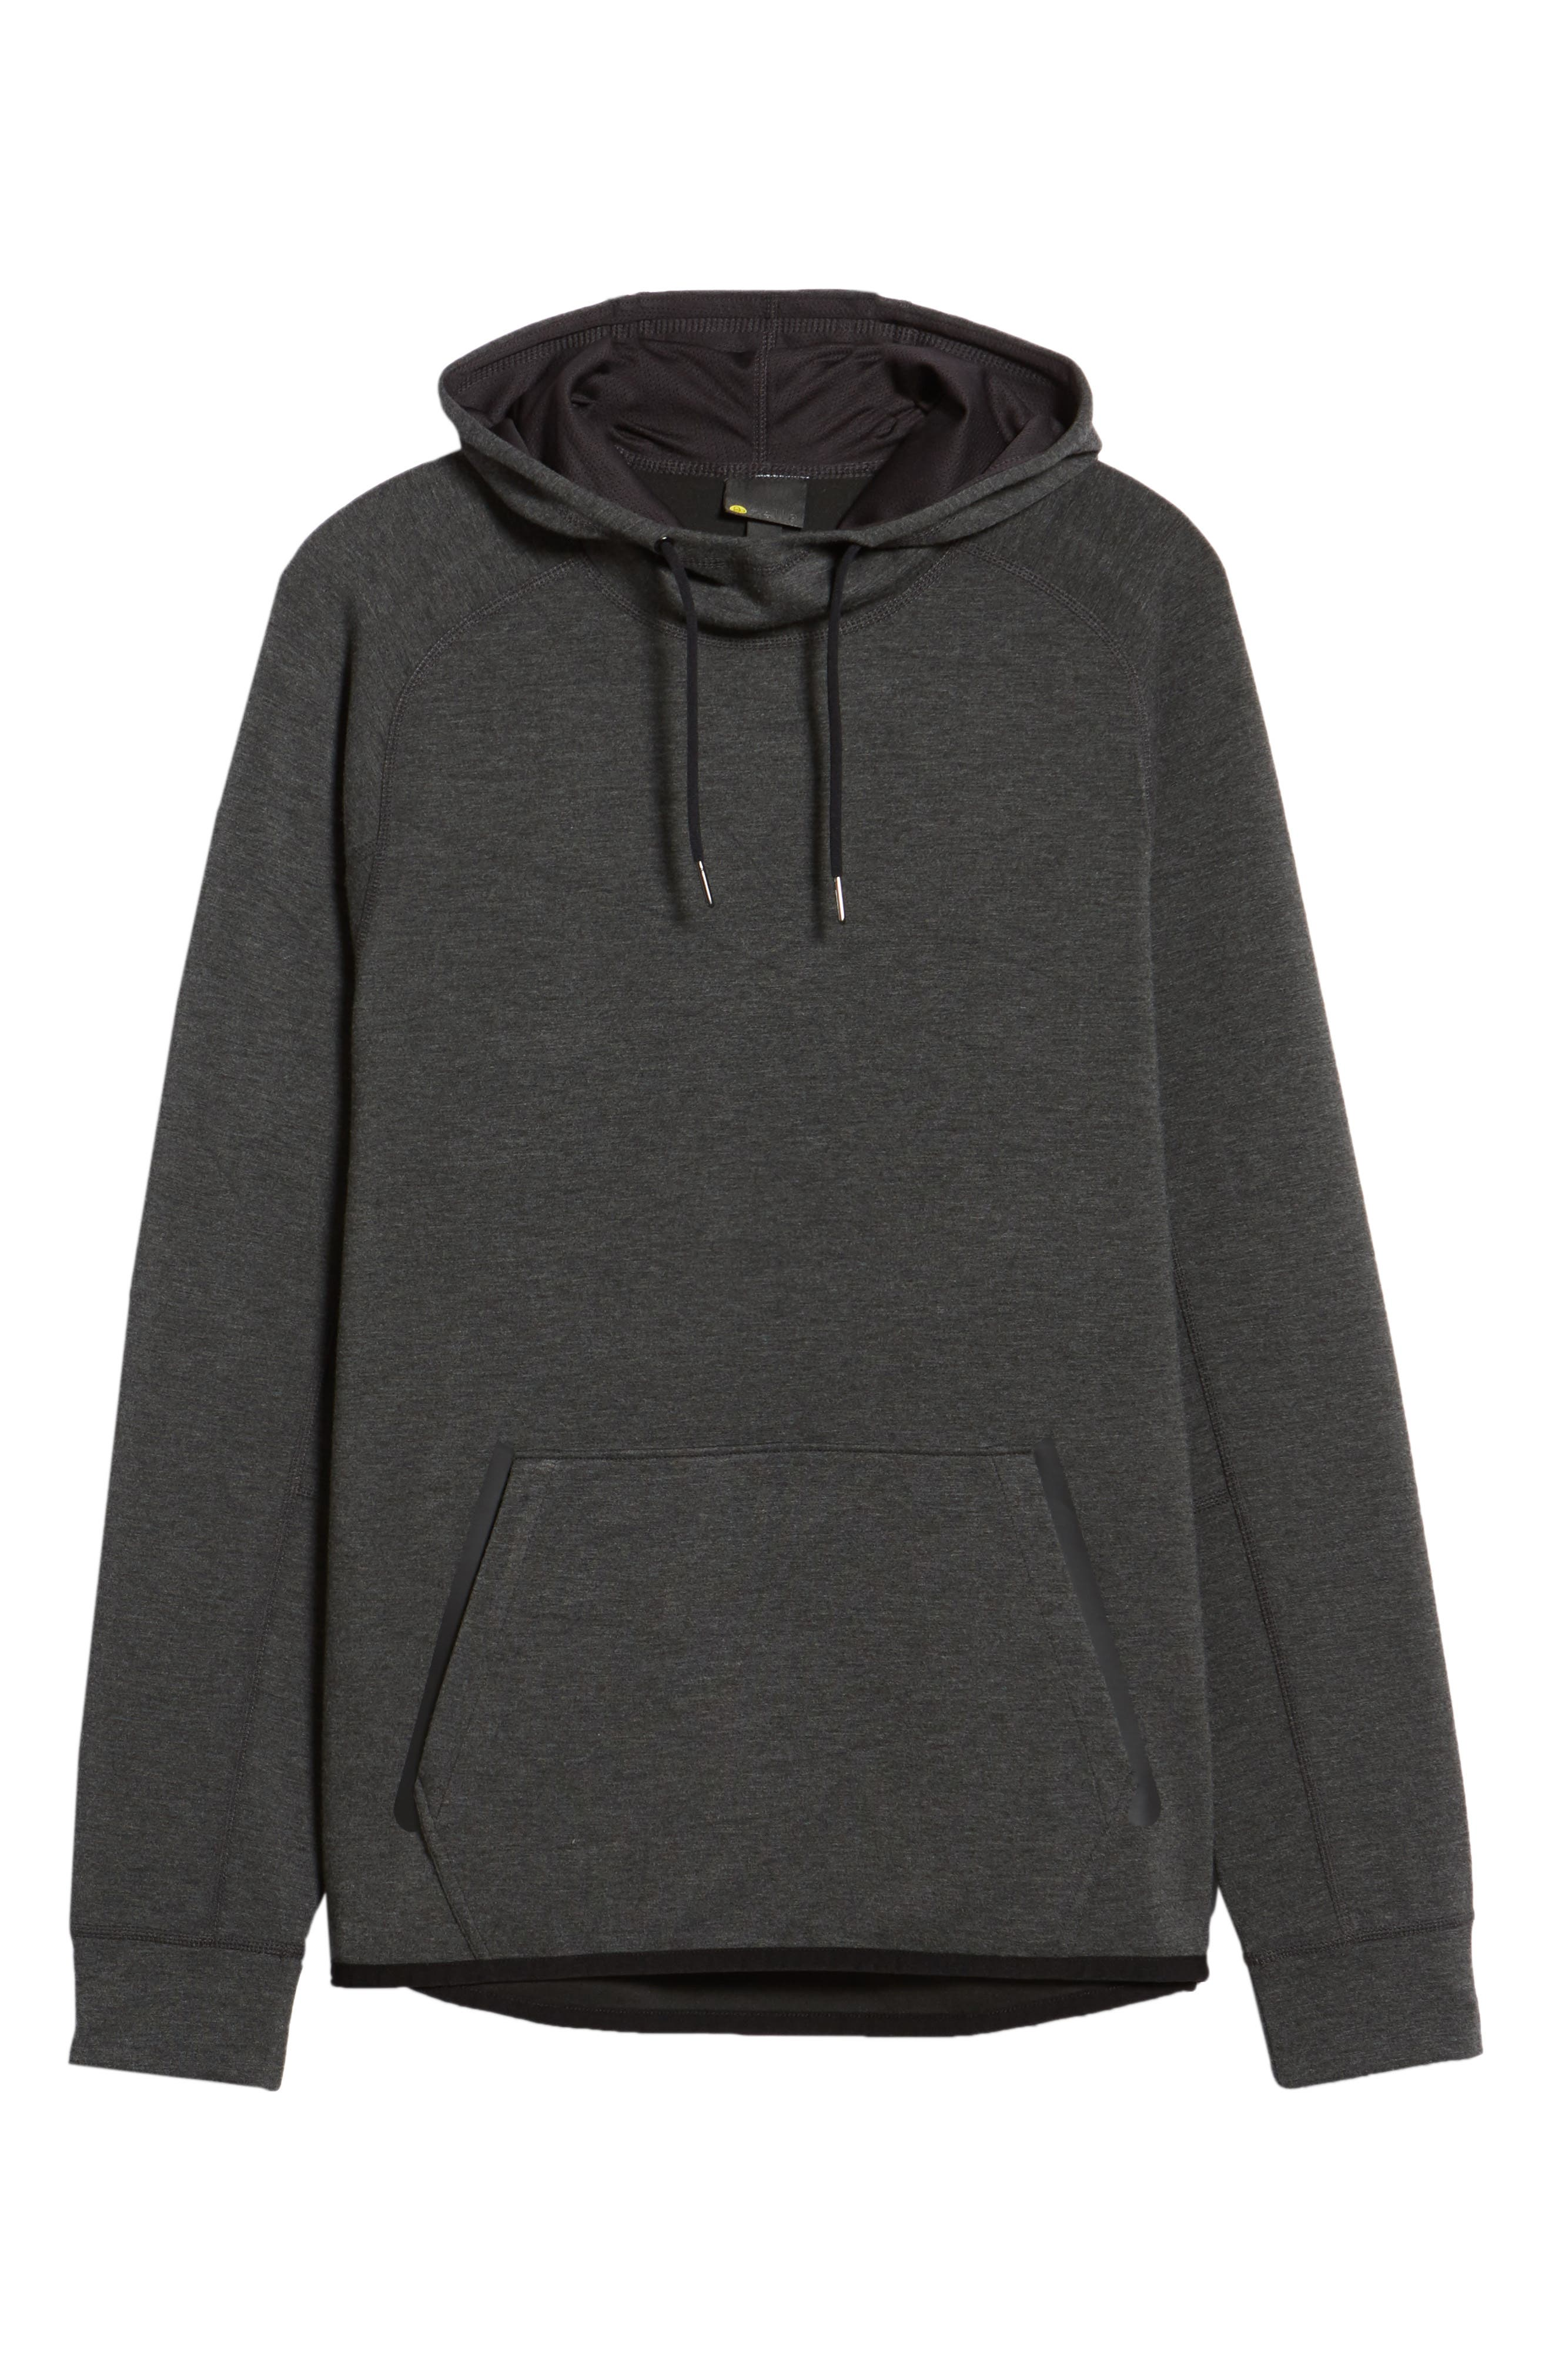 Active Pullover Hoodie,                             Alternate thumbnail 6, color,                             BLACK OXIDE HEATHER